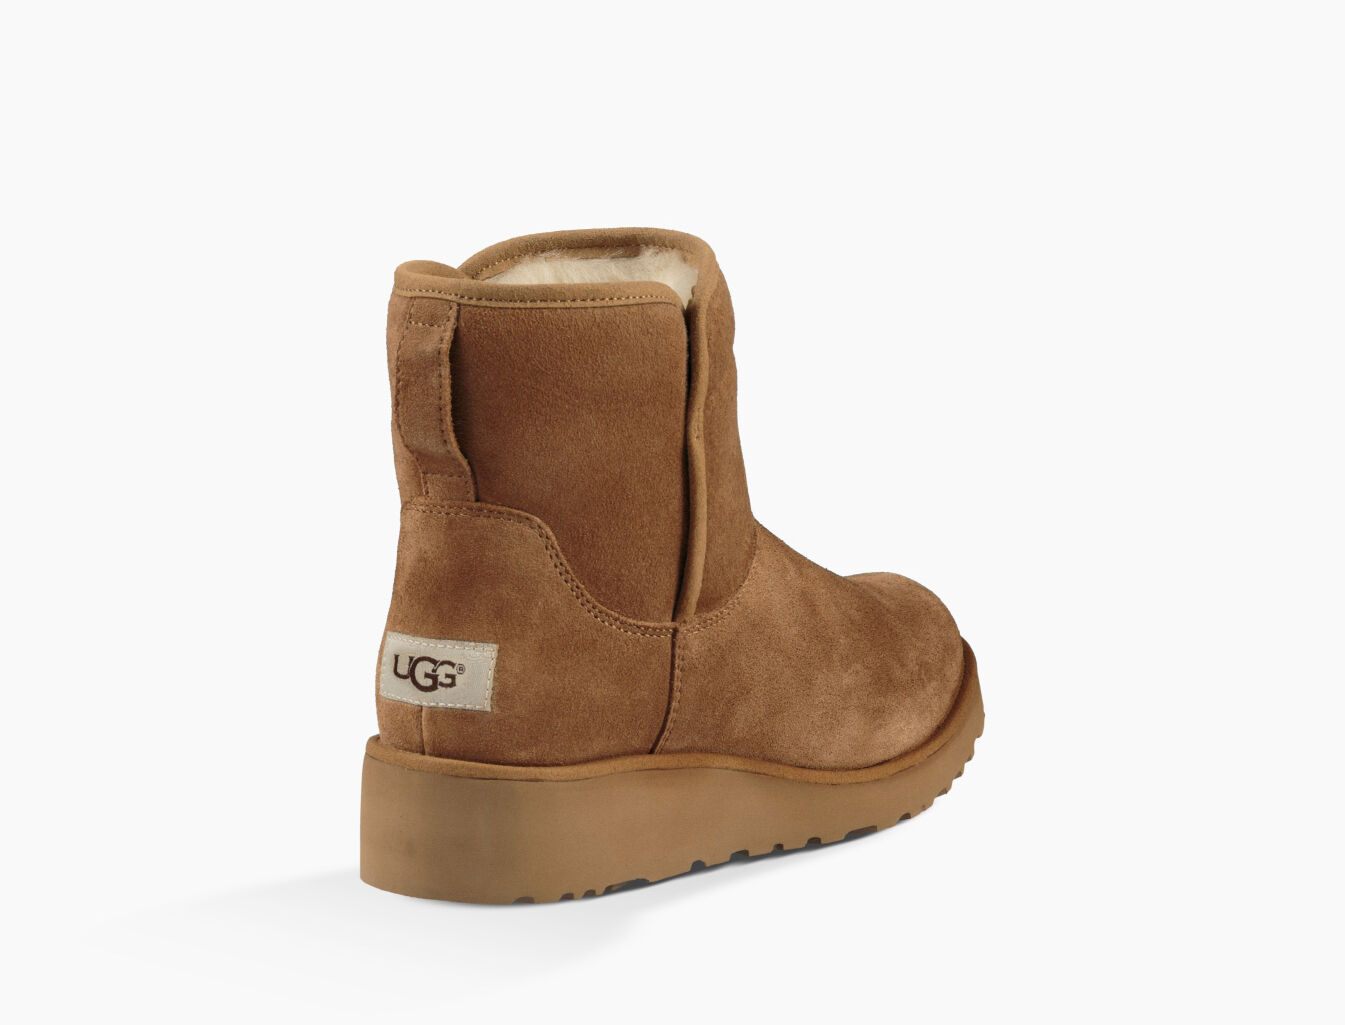 UGG Boots Arch Support: Transform Your